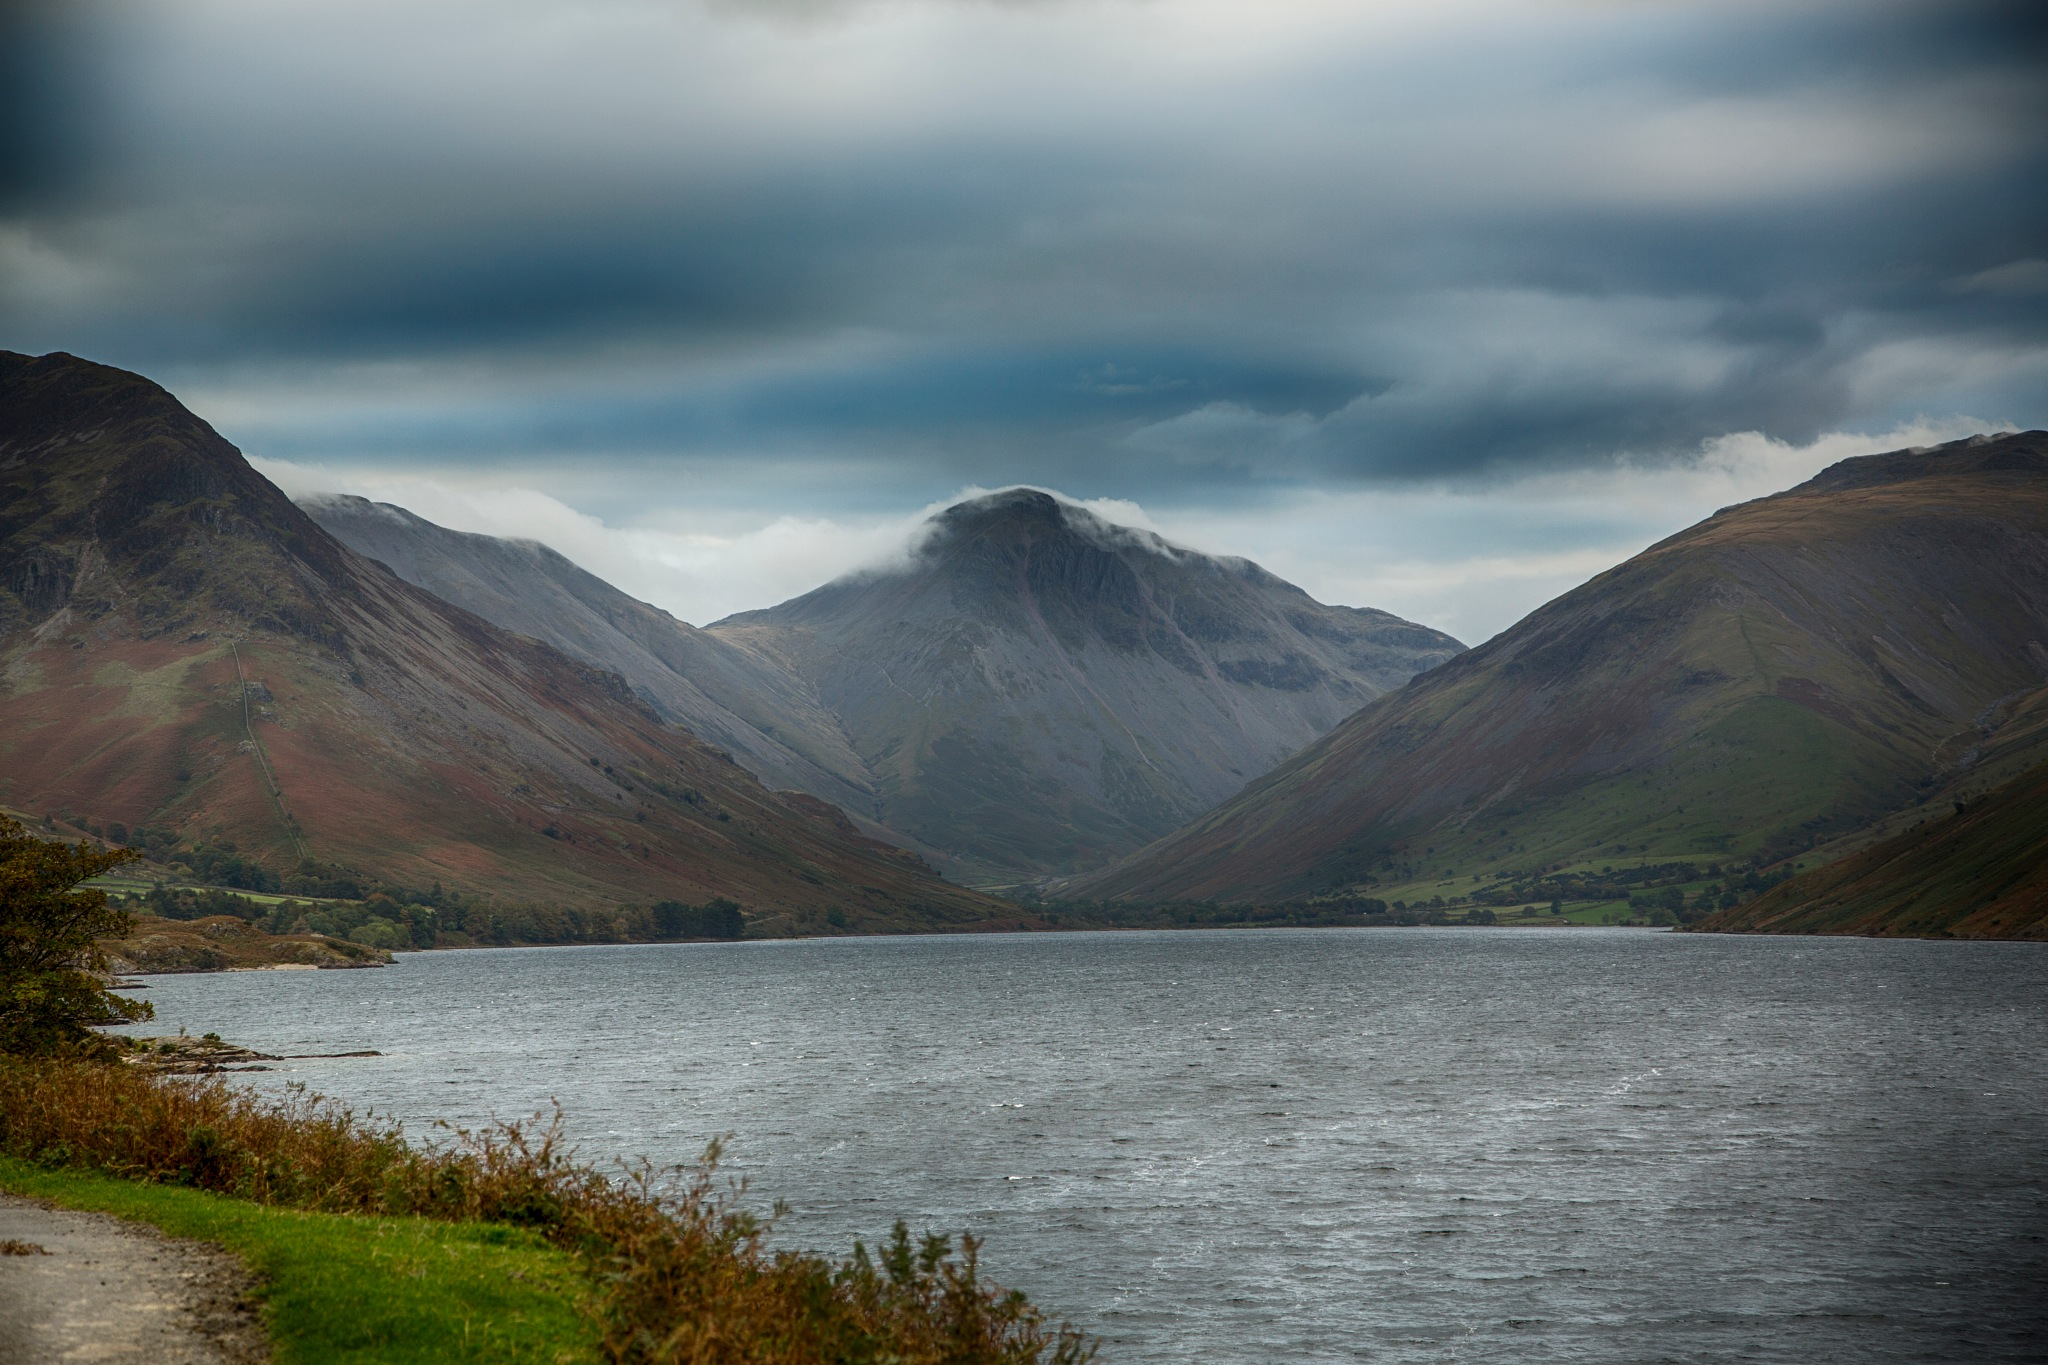 Below the Clouds by photogaphotography